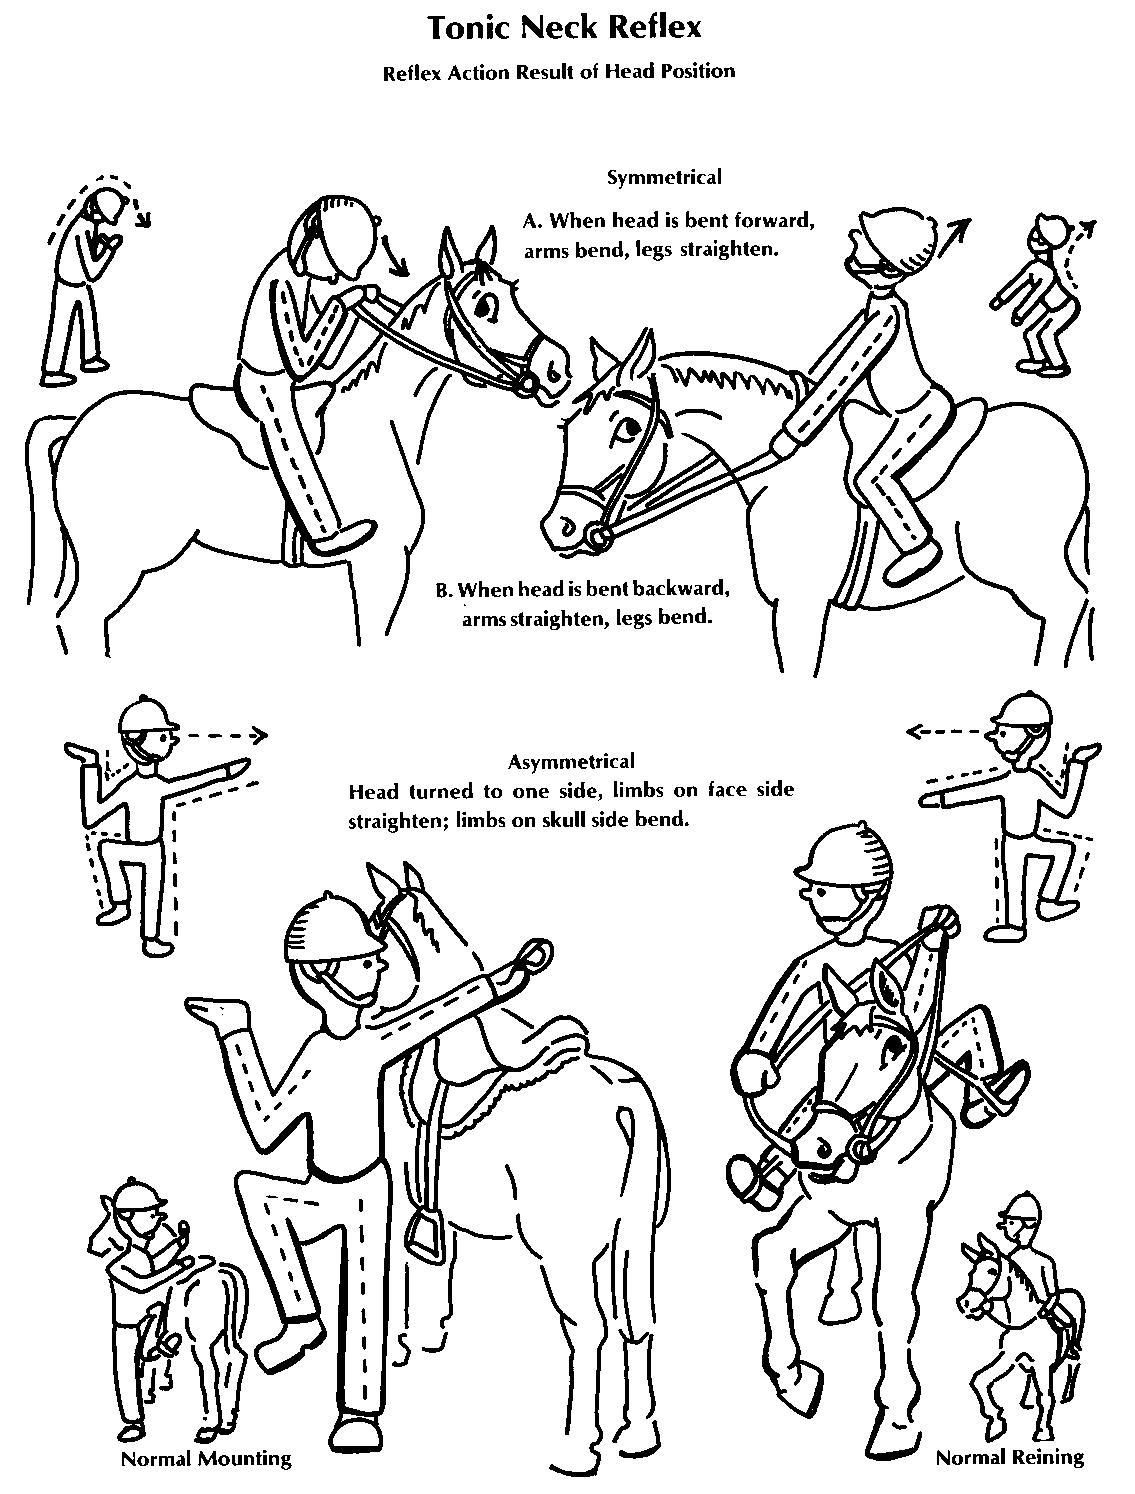 Hippotherapy Amp Ot Info To Know